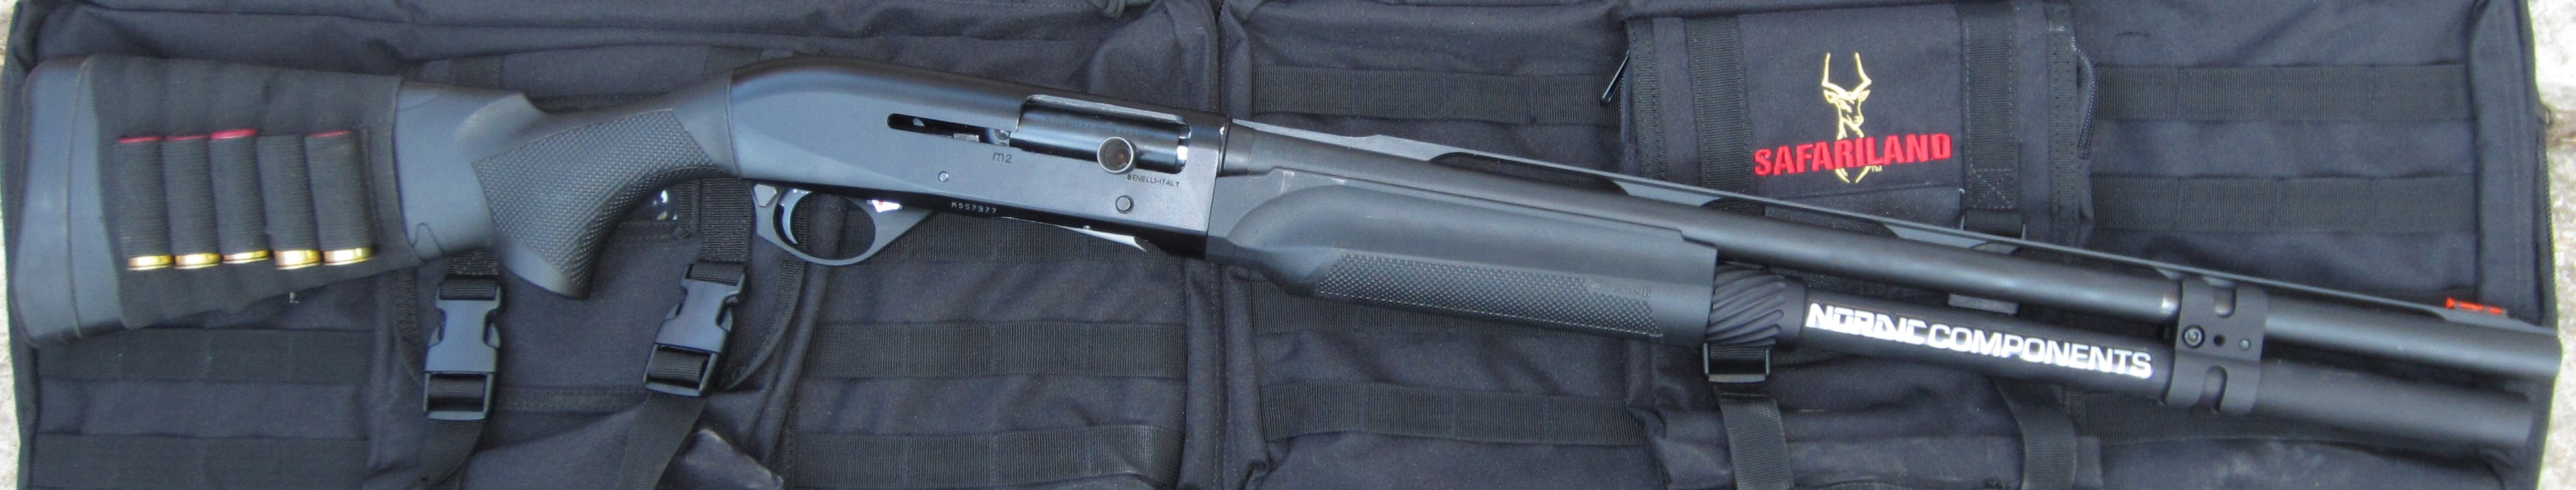 Benelli m2 tactical reviews - Related Posts